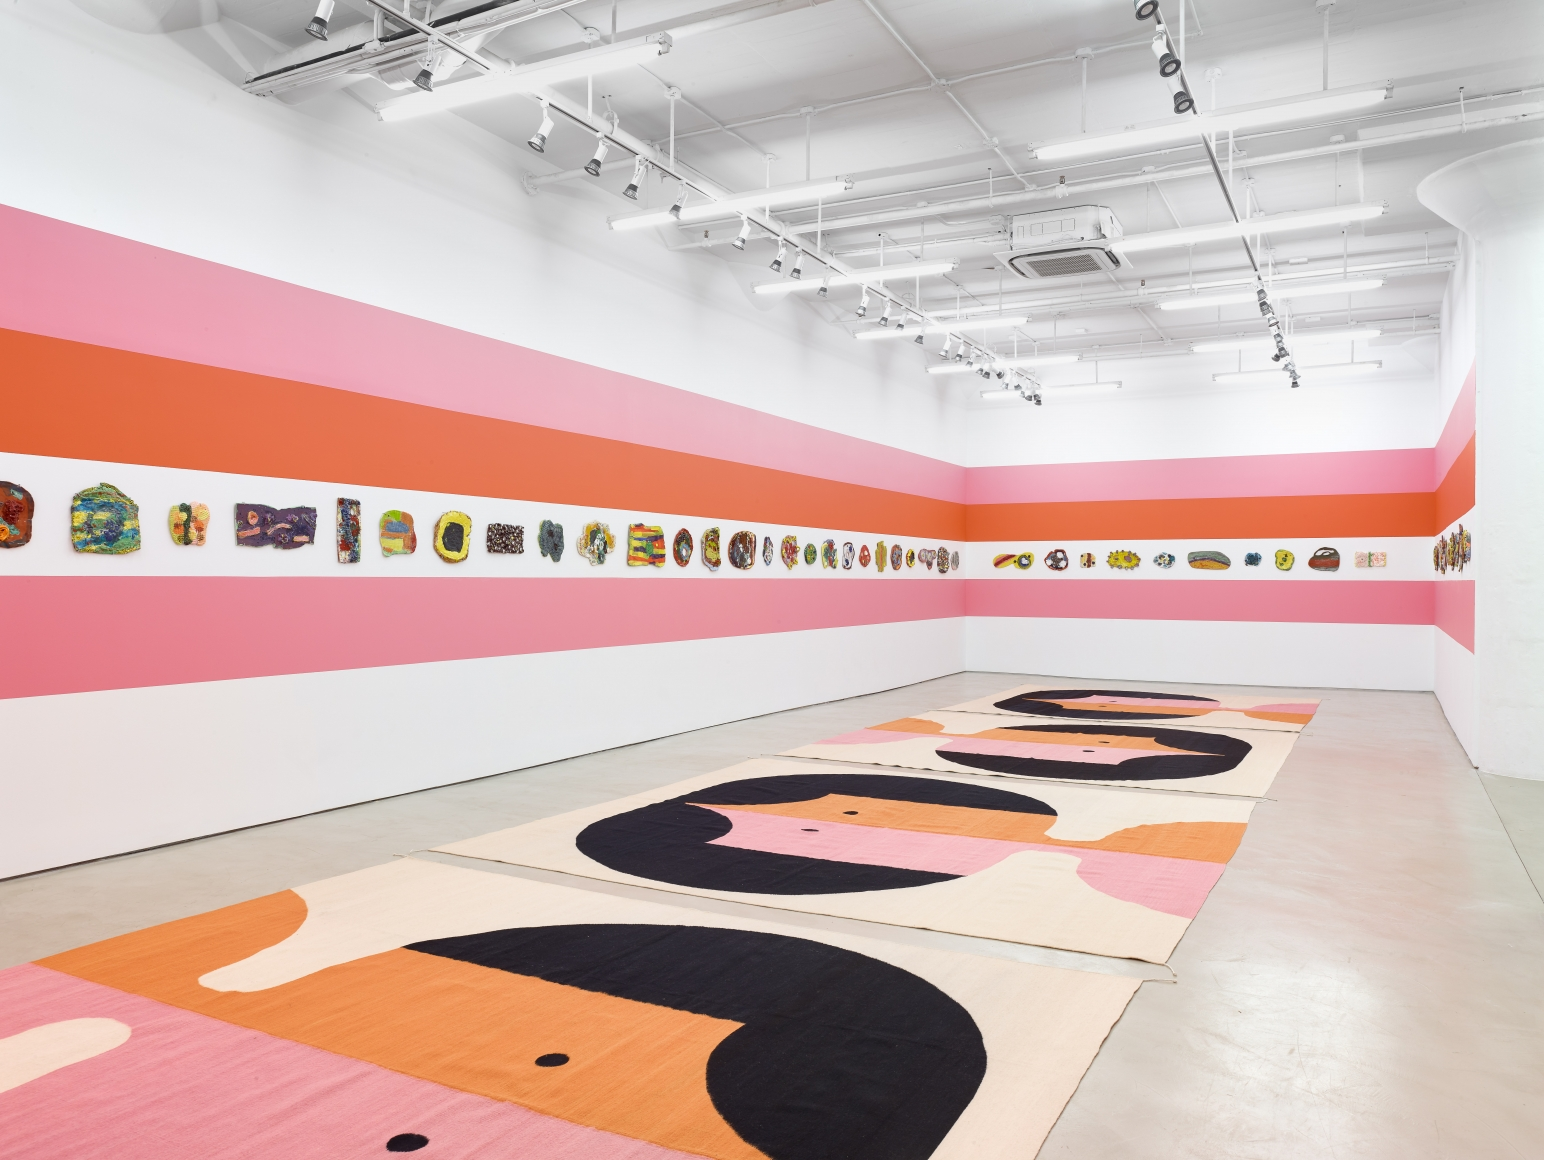 """Polly Apfelbaum, """"The Potential of Women,"""" 2018. Alexander Gray Gallery, New York City."""